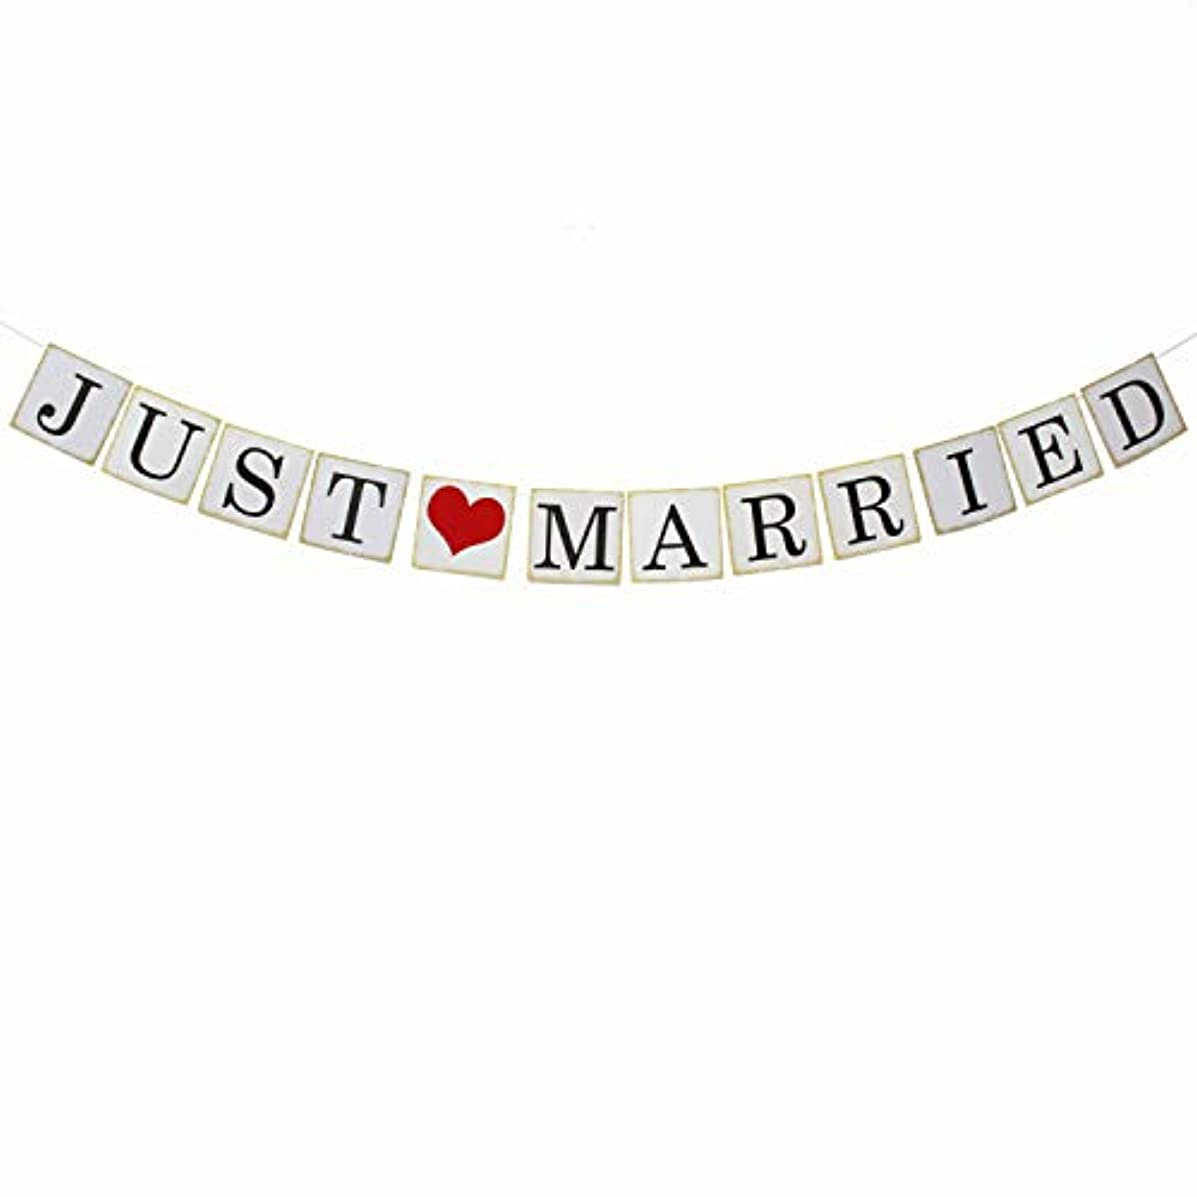 Just Married Wedding Banner - Vow Renewal Wedding Party - Bachelorete Engagement Car Décor - Bridal Shower Photo Props Hanging Decoration